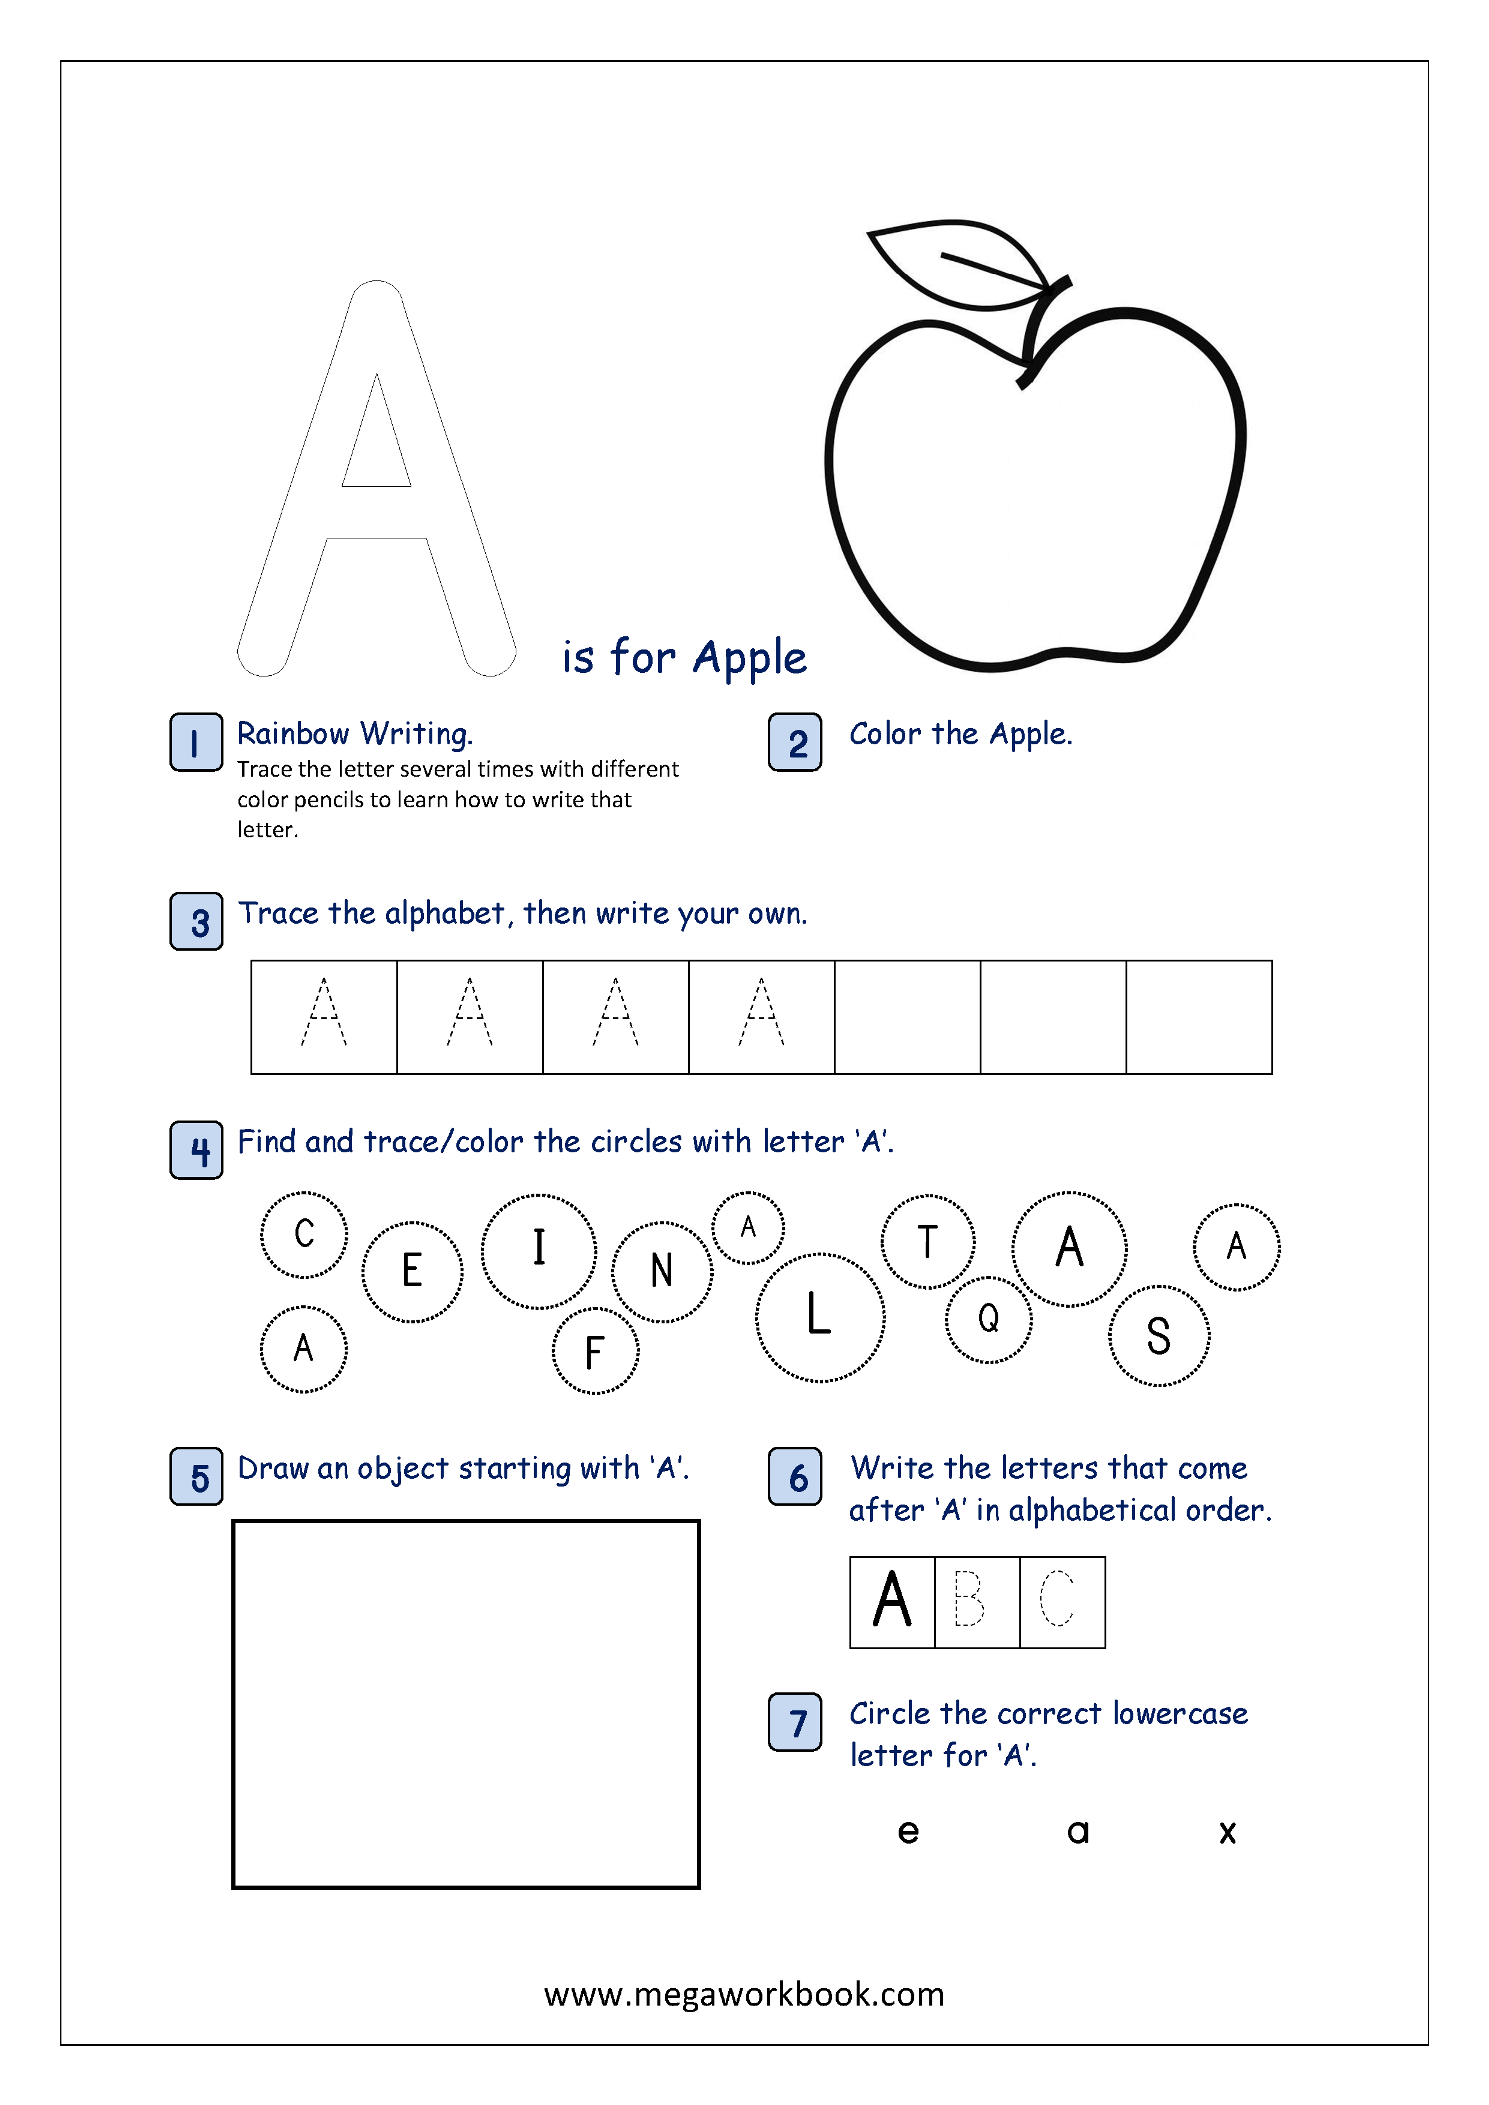 Free Printable Alphabet Recognition Worksheets For Capital for Alphabet Tracing Order